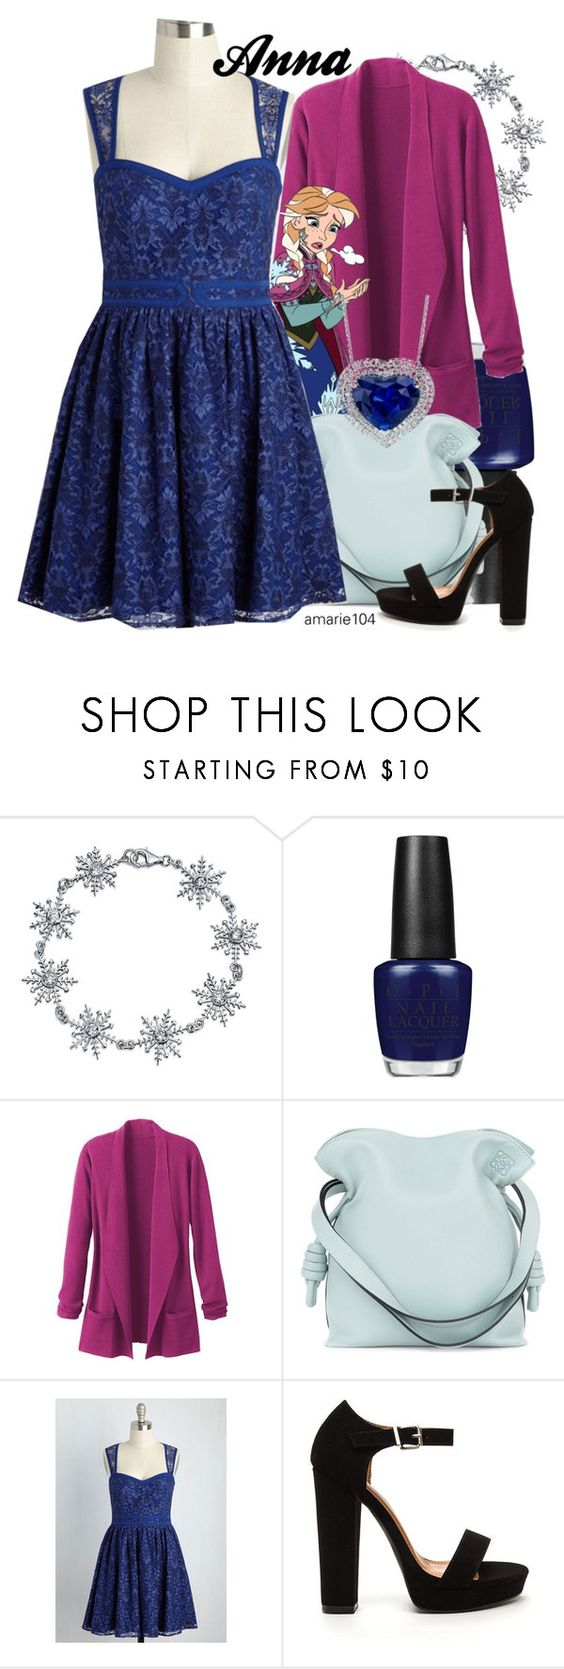 """Anna"" by amarie104 ❤ liked on Polyvore featuring Bling Jewelry, OPI, TravelSmith and Loewe"